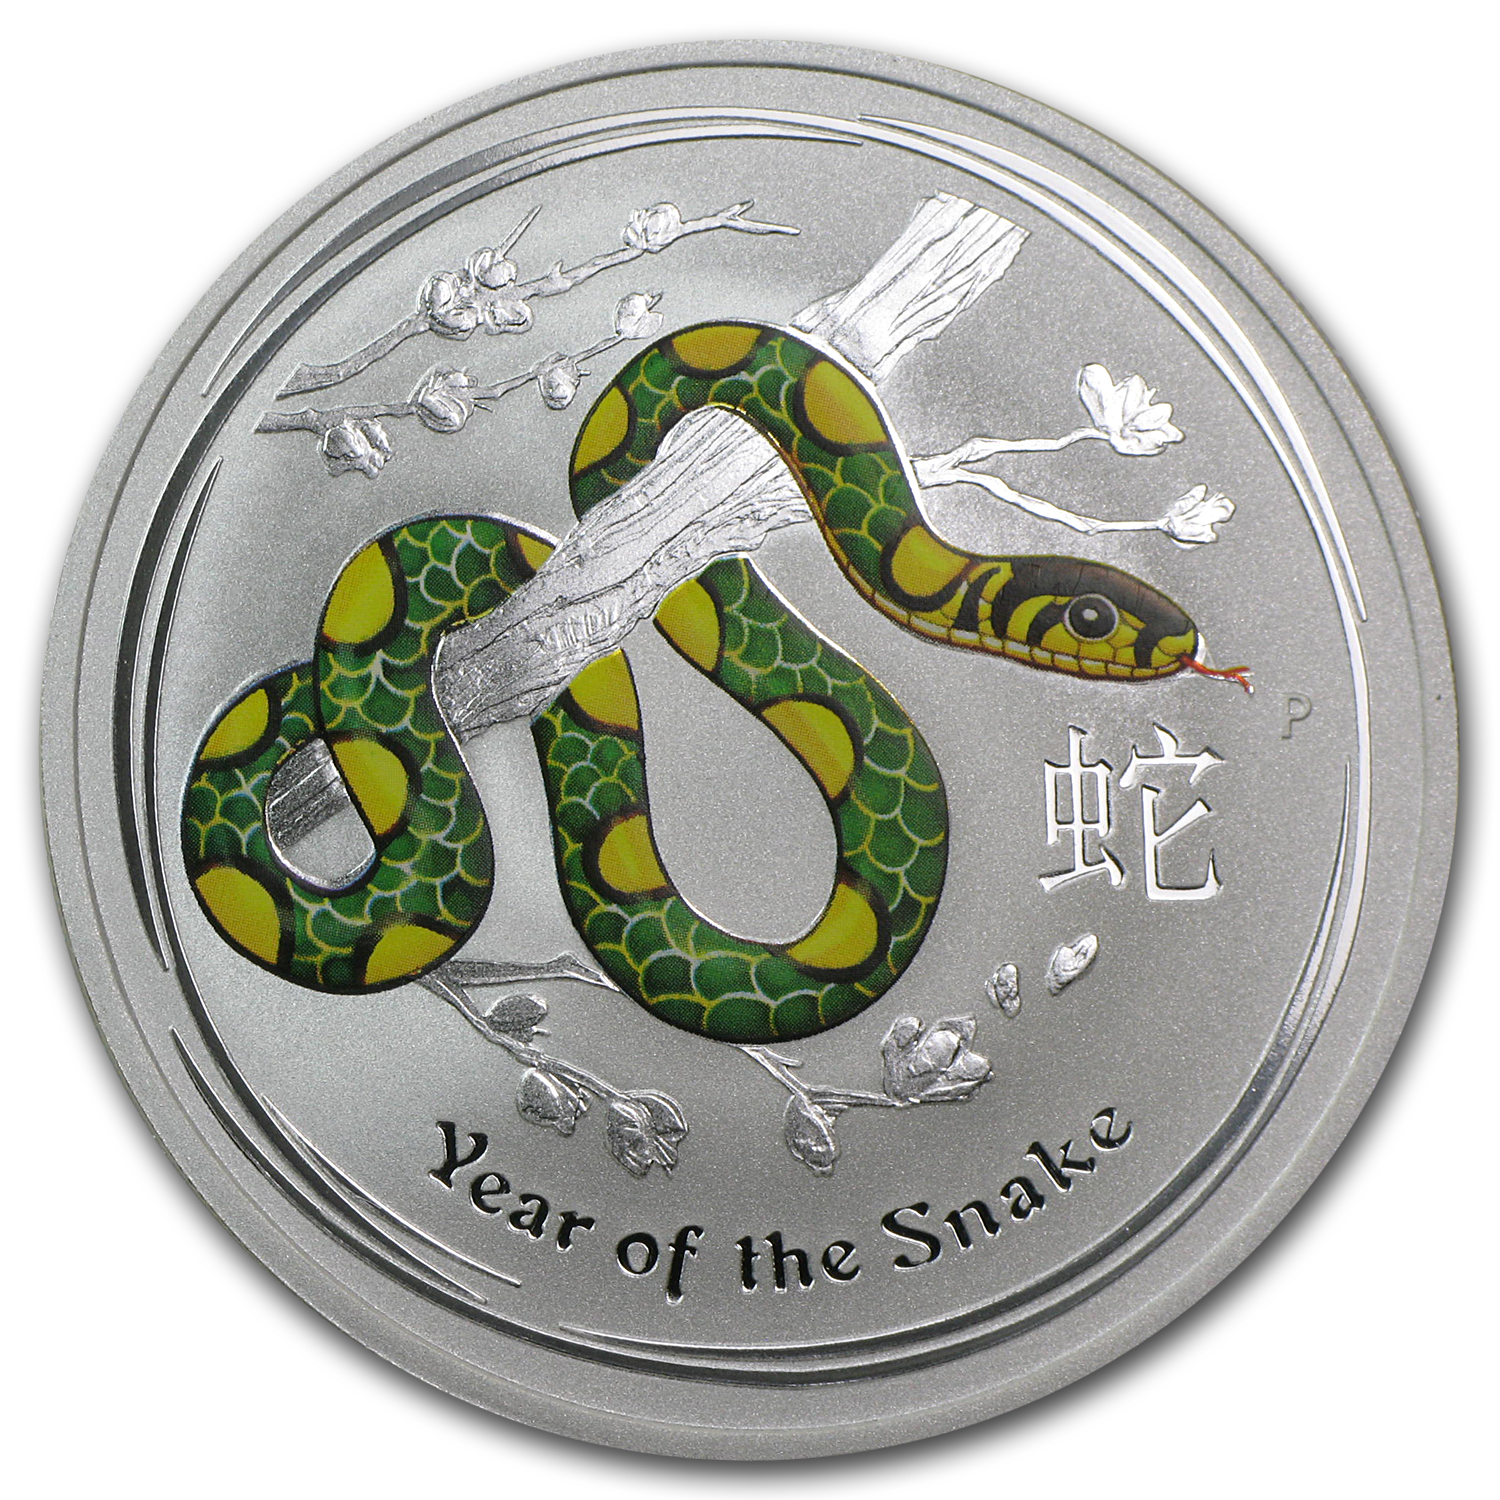 2013 Australia 1 oz Silver Year of the Snake BU (Colorized)